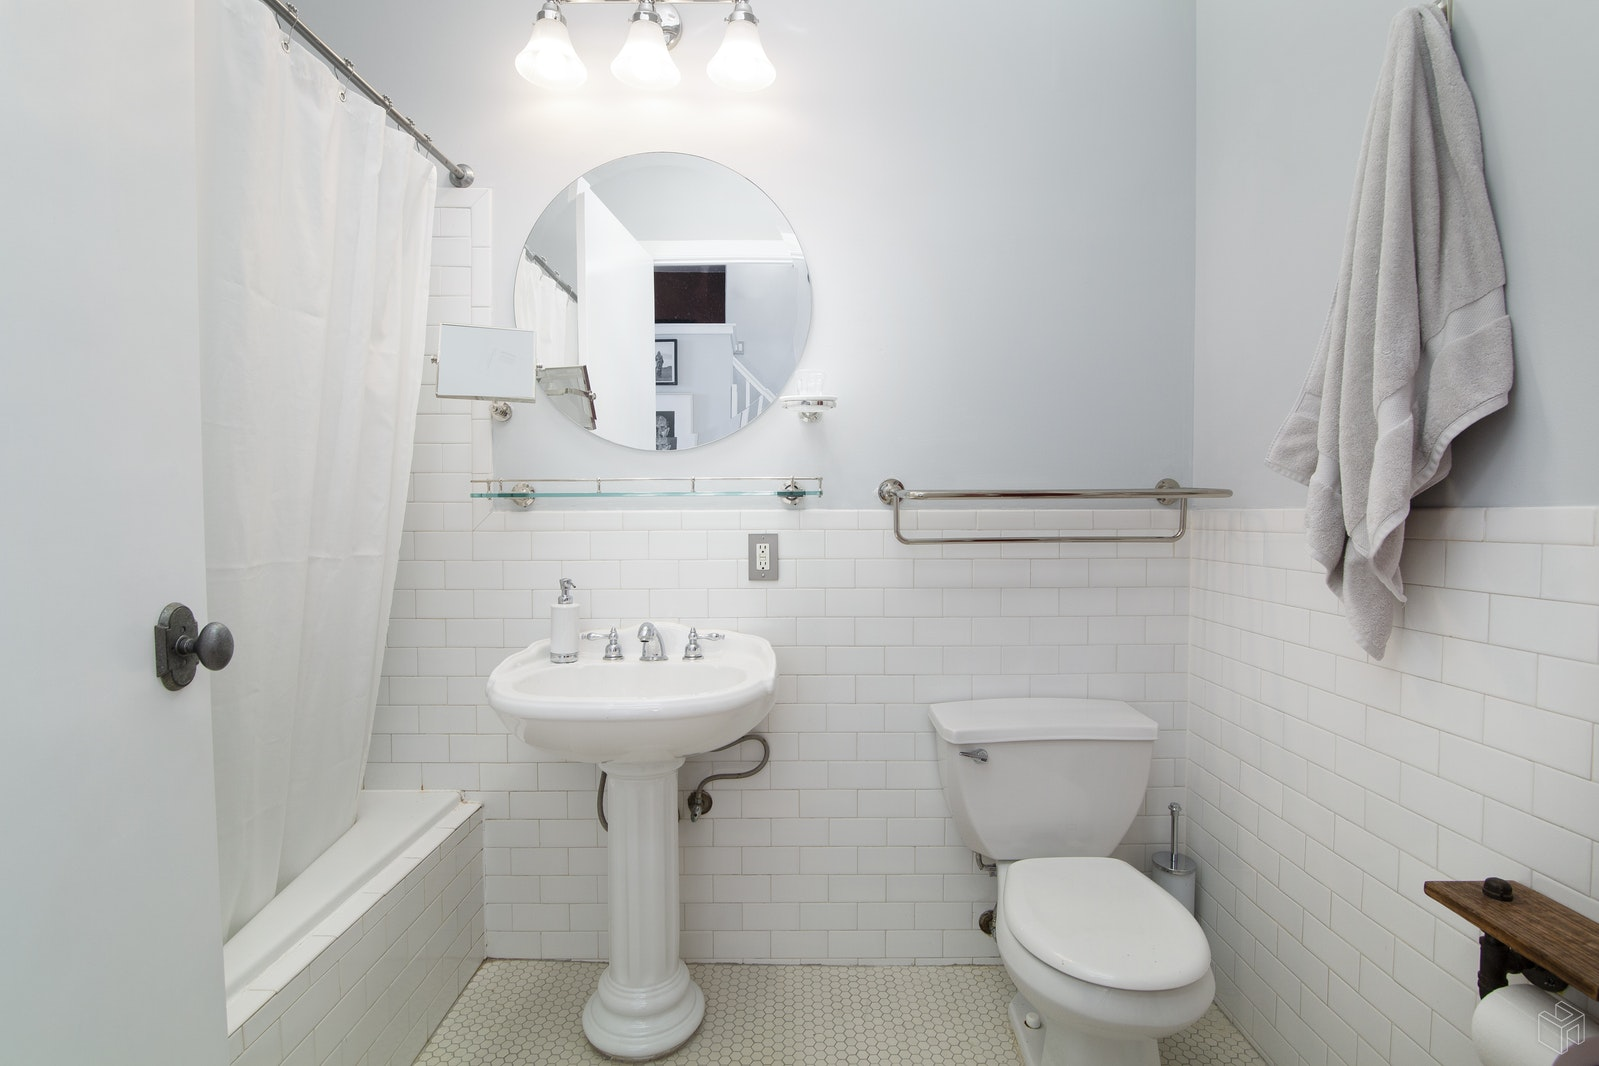 689 Myrtle Avenue 2a, Clinton Hill, Brooklyn, NY, 11205, $798,000, Sold Property, Halstead Real Estate, Photo 7